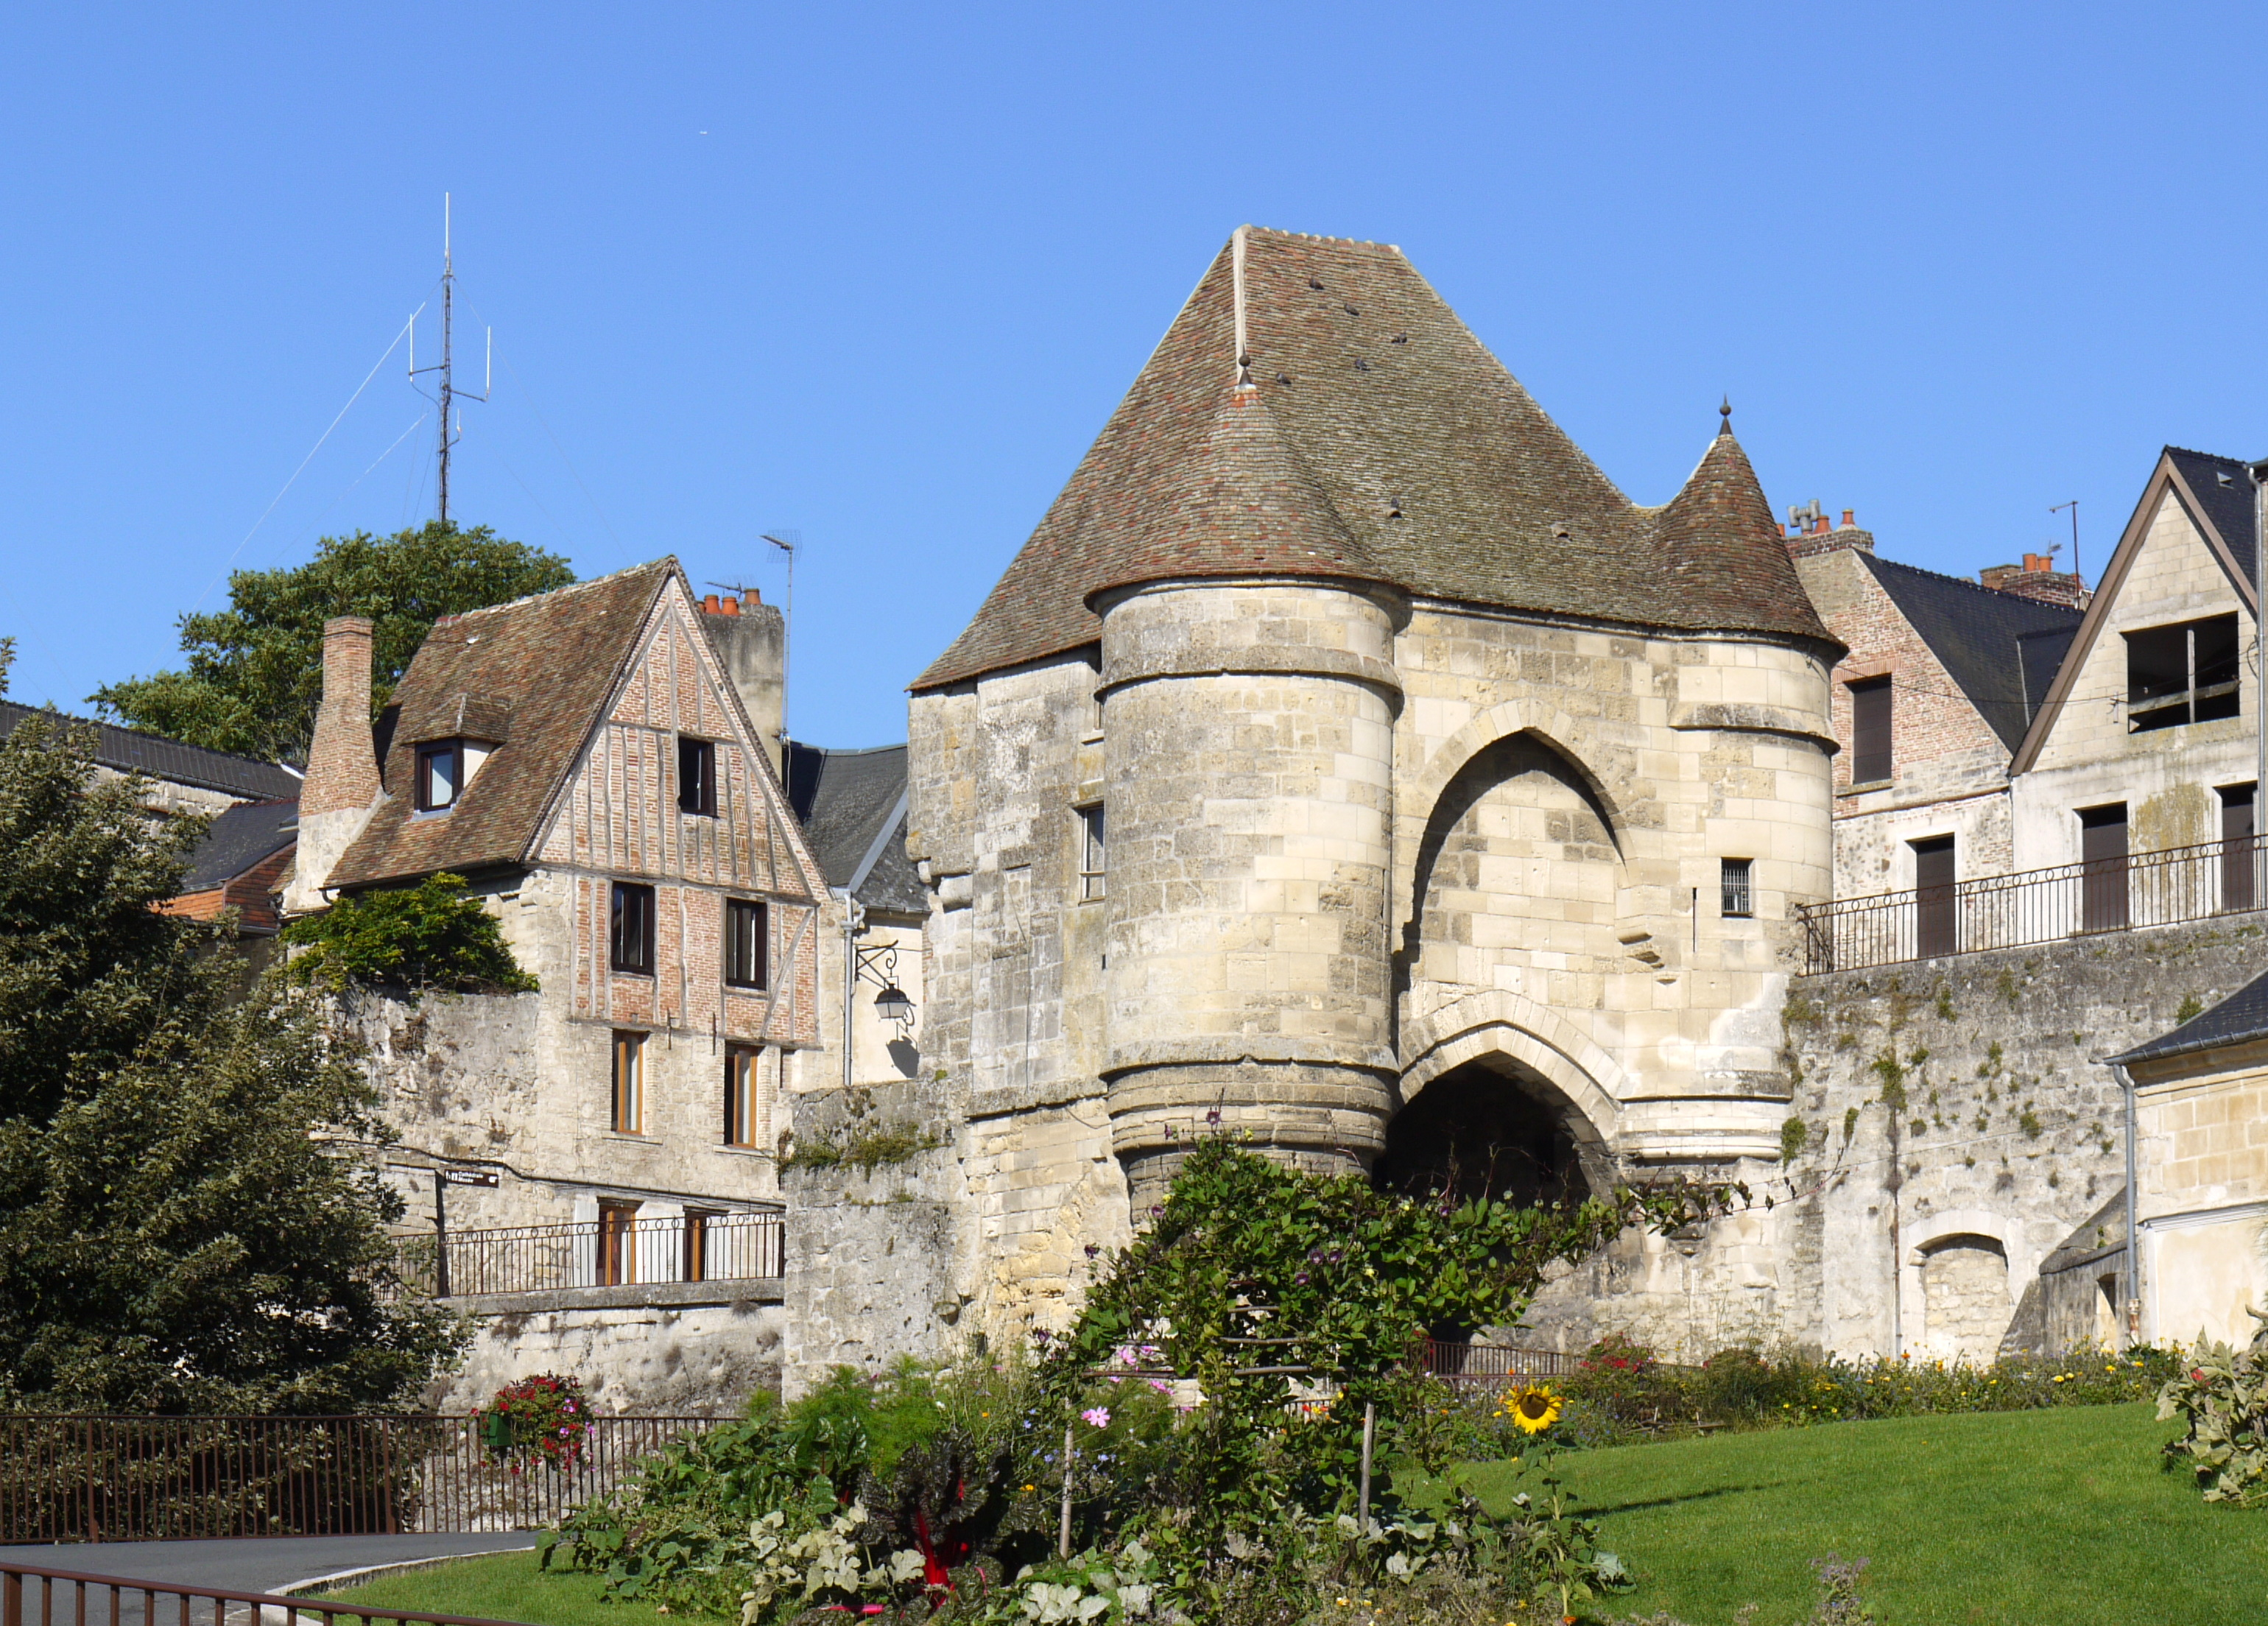 Ardon France  city photos : Original file ‎ 3,080 × 2,208 pixels, file size: 2.6 MB, MIME type ...